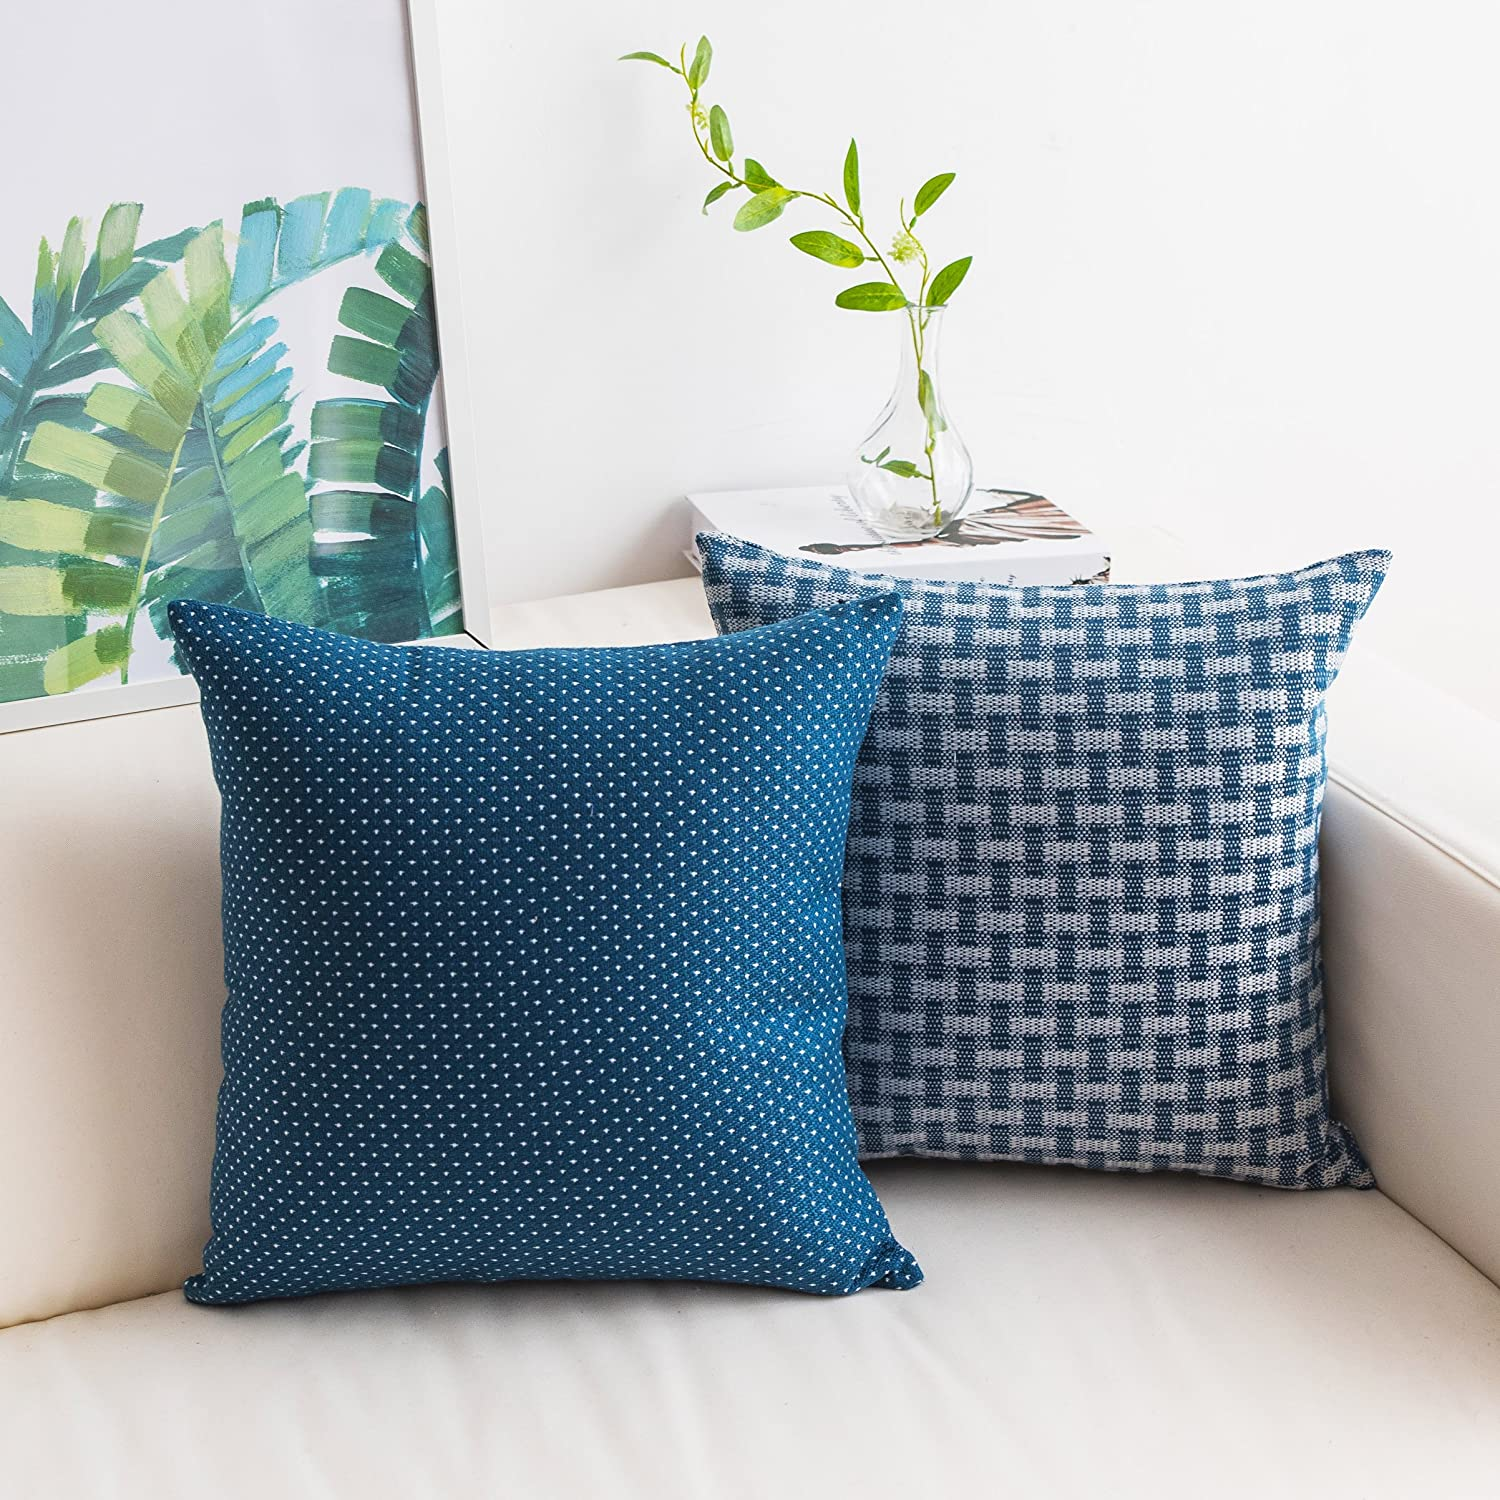 Home Brilliant Set of 2 Linen Cushion Cover Dots and Checkers Woven Textured Nautical Lined Square Decorative Toss Throw Pillow Covers Pillowcases for Chair Bed, 18inch (45cm), White Navy Blue